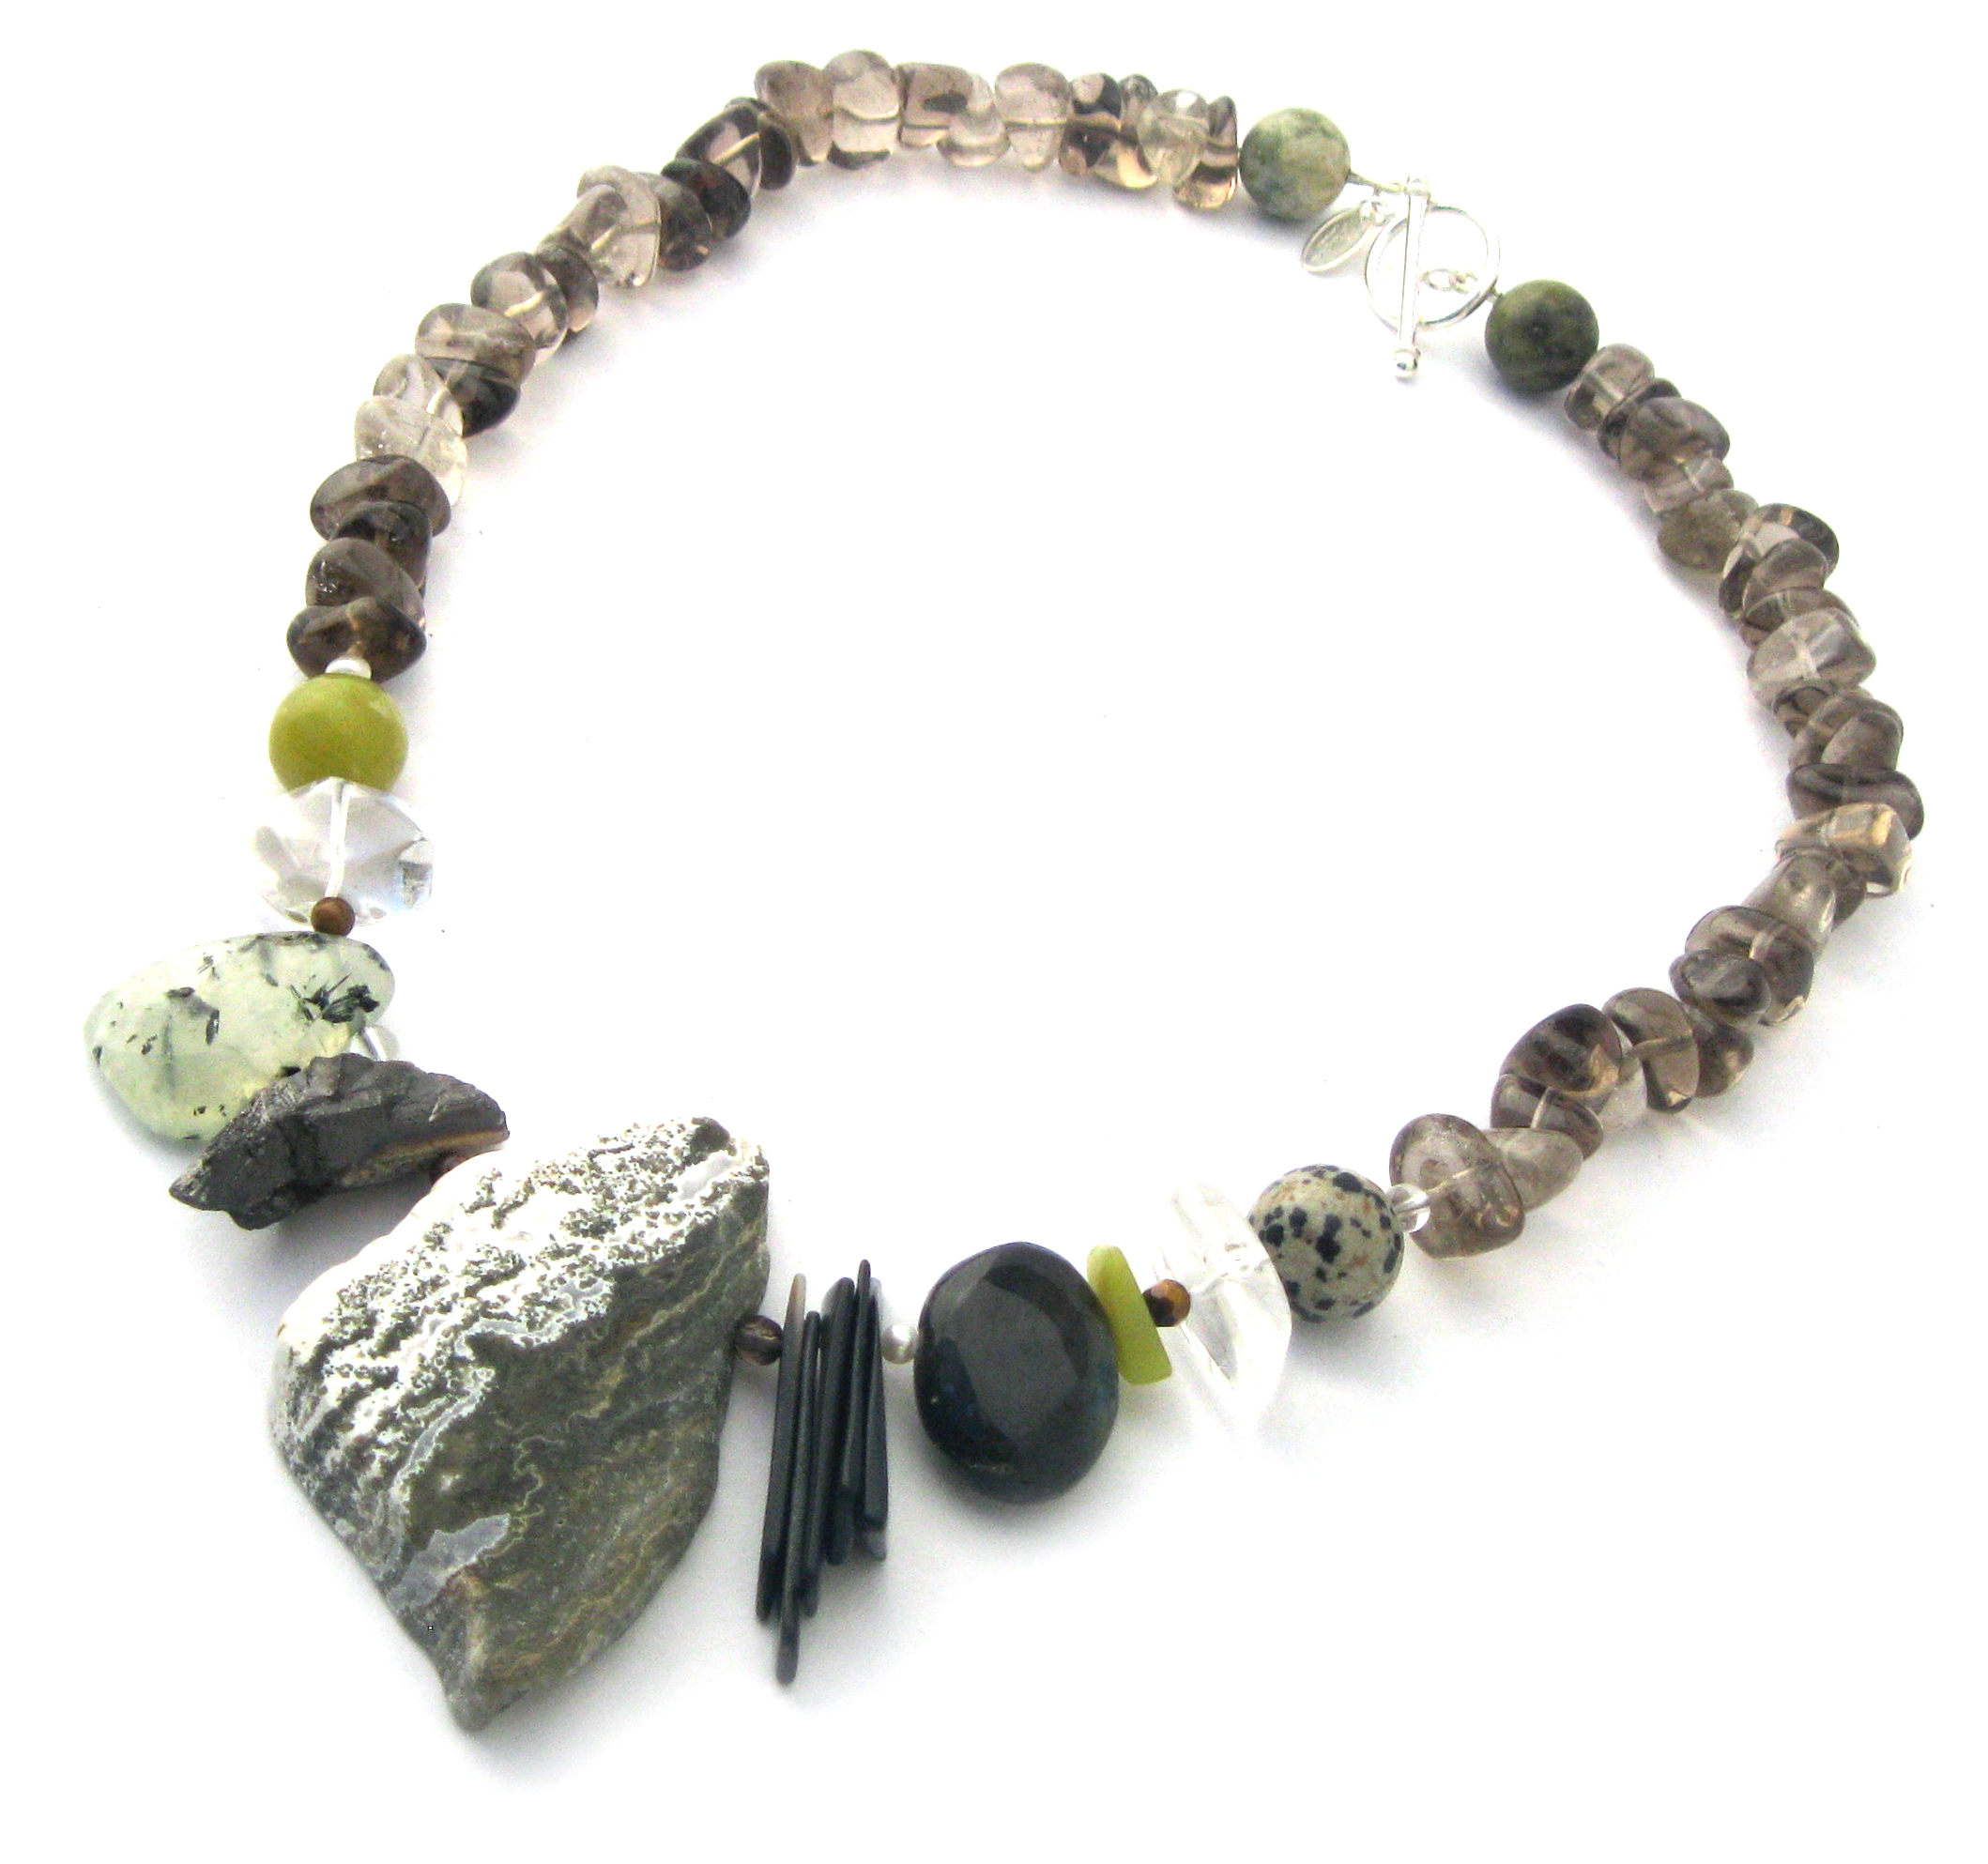 rock-necklace-dawn-katherine-bree-jewellery.jpg